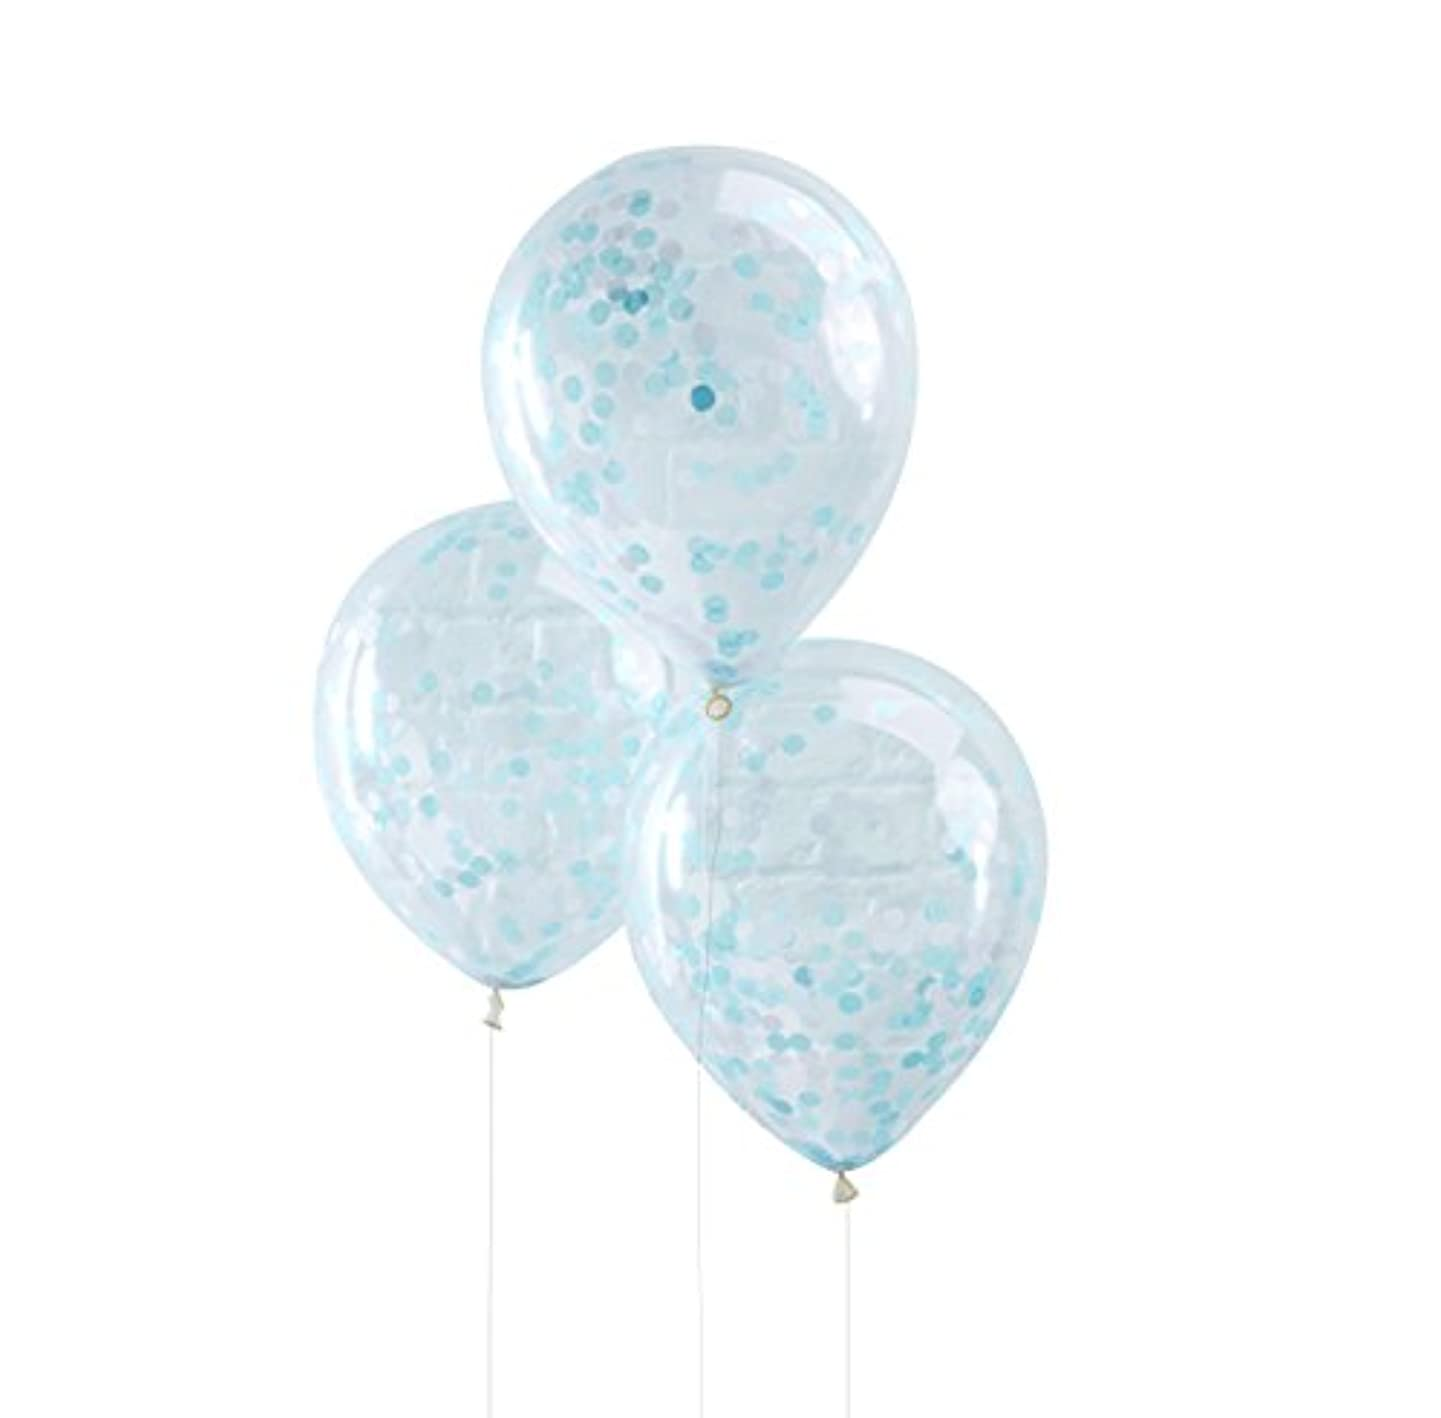 Ginger Ray Blue Confetti Filled Clear Party Balloons X 5 Party Decorations- Pick And Mix